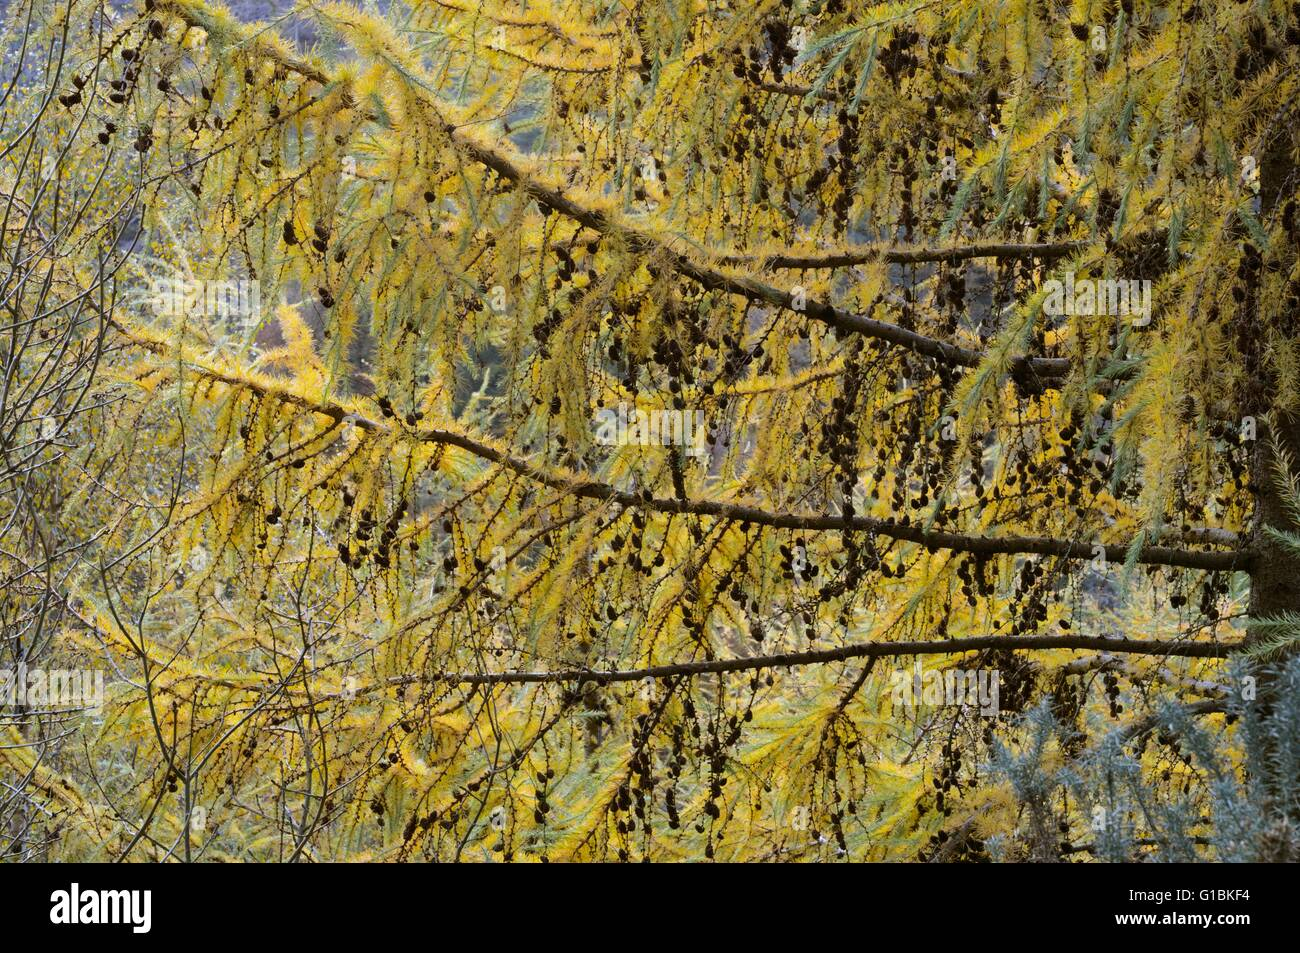 Cones  and Autumn foliage of Japanese Larch, Larix kaempferi Wales, UK - Stock Image